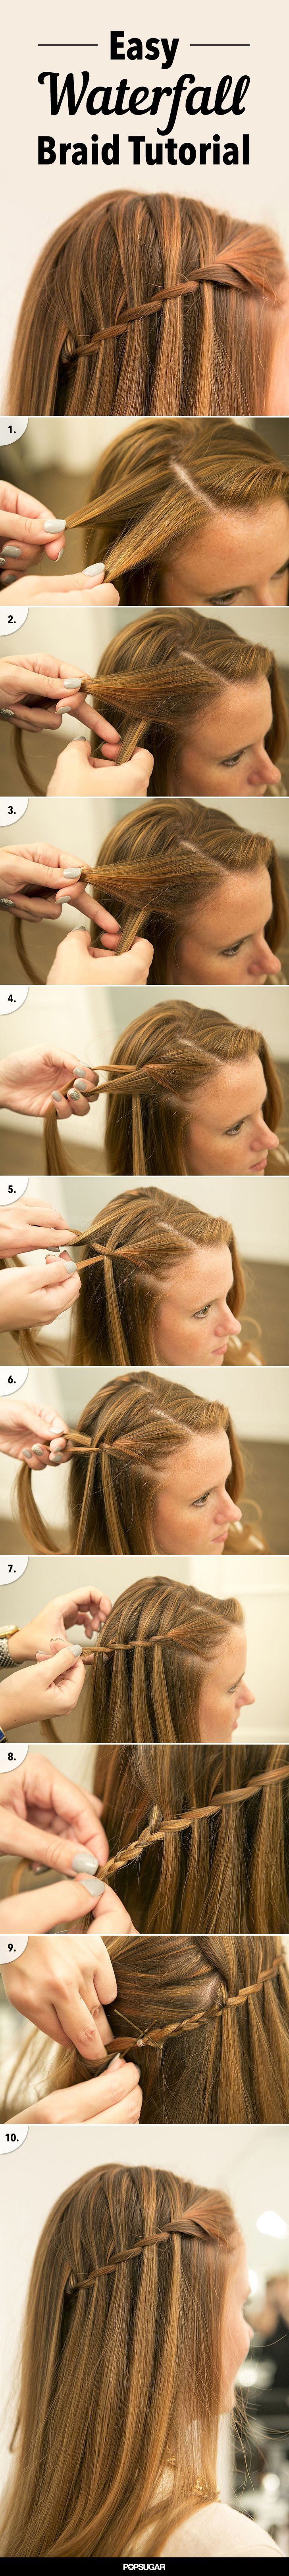 The Waterfall Braid #HairTutorial You Are Going to Want to Pin #Hairstyle #Beauty